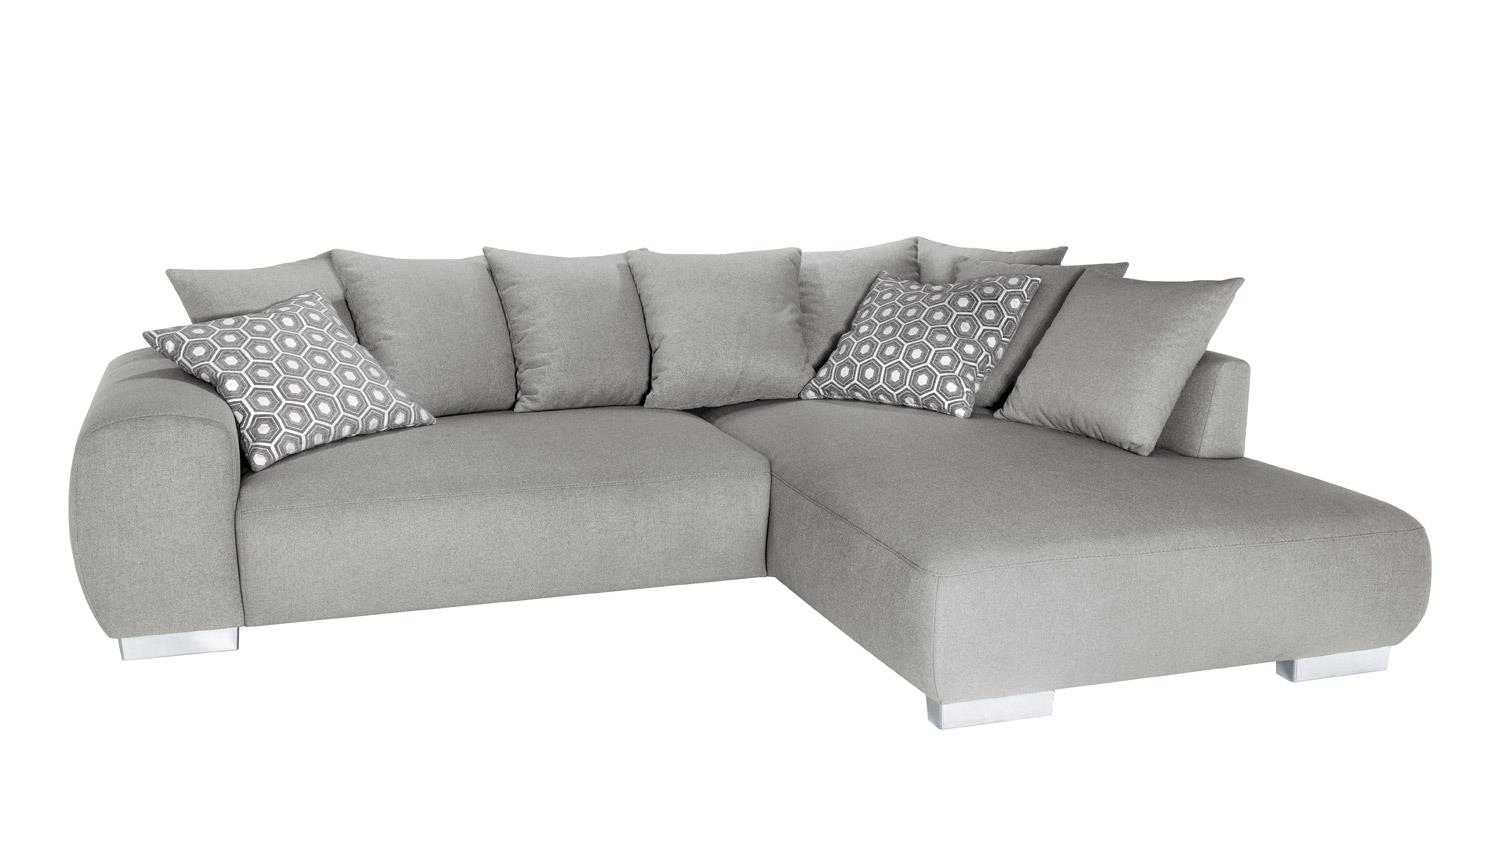 Ecksofa summertime in stoff grau inkl bettfunktion und for Ecksofa stoff grau